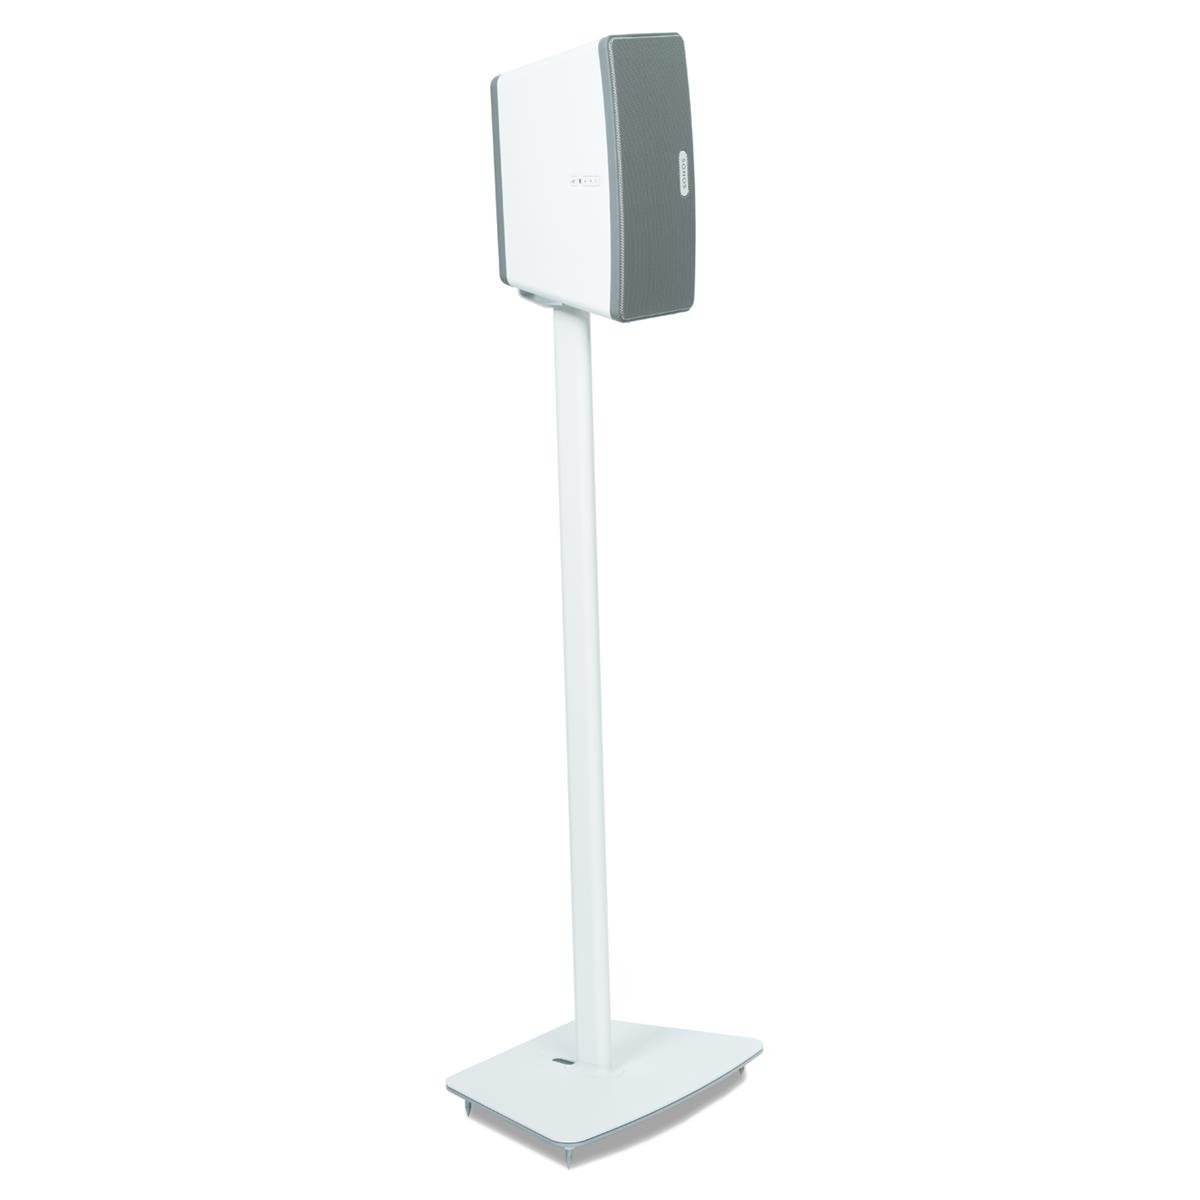 Sonos Play:3 All-In-One Wireless Music System with Flexson Floor Stand (White)